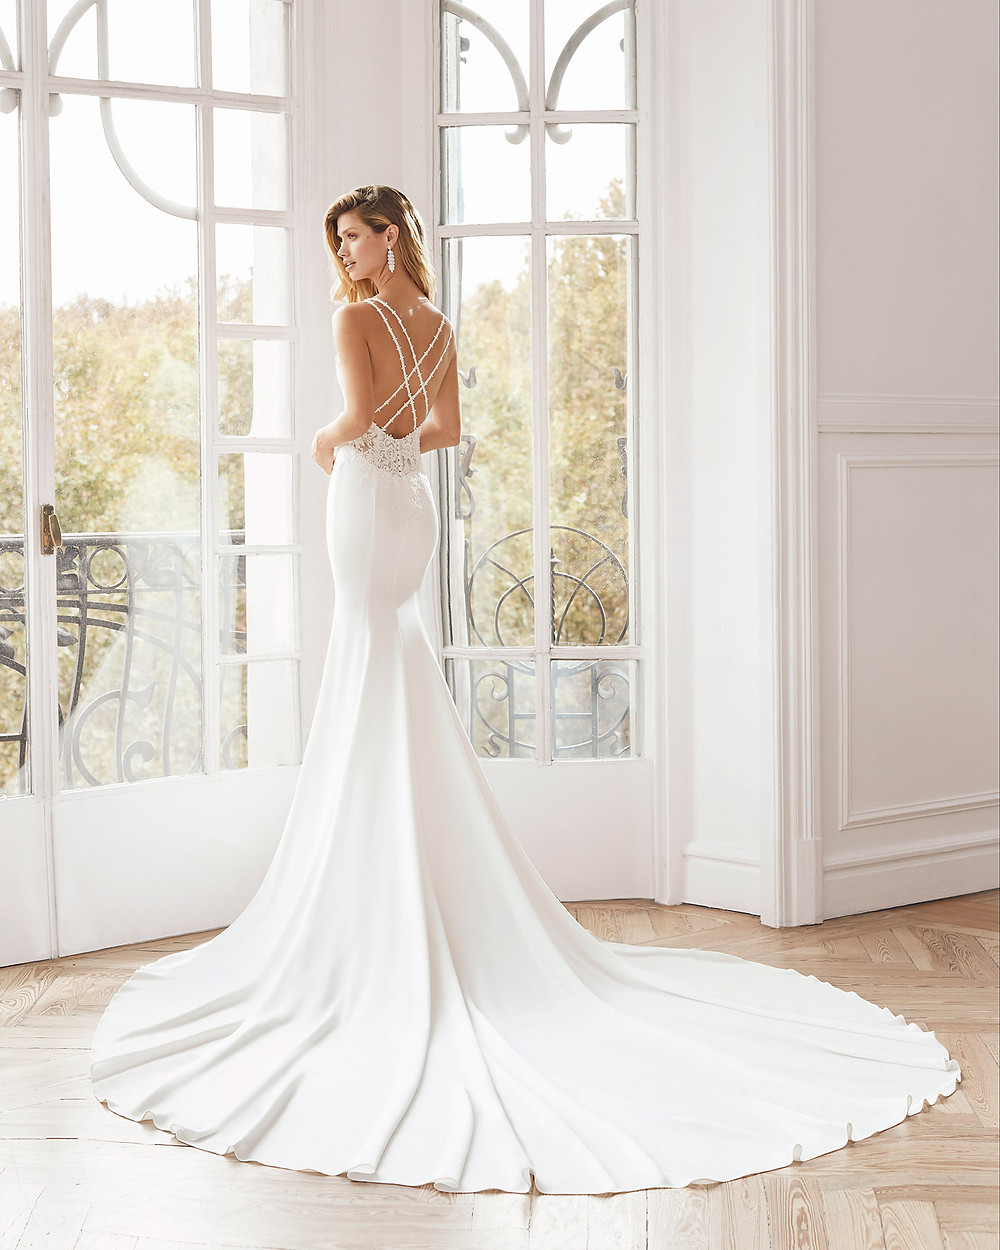 An Aire Barcelona 2020 sexy crepe mermaid fit and flare wedding dress with a low back, thin spaghetti straps and a train